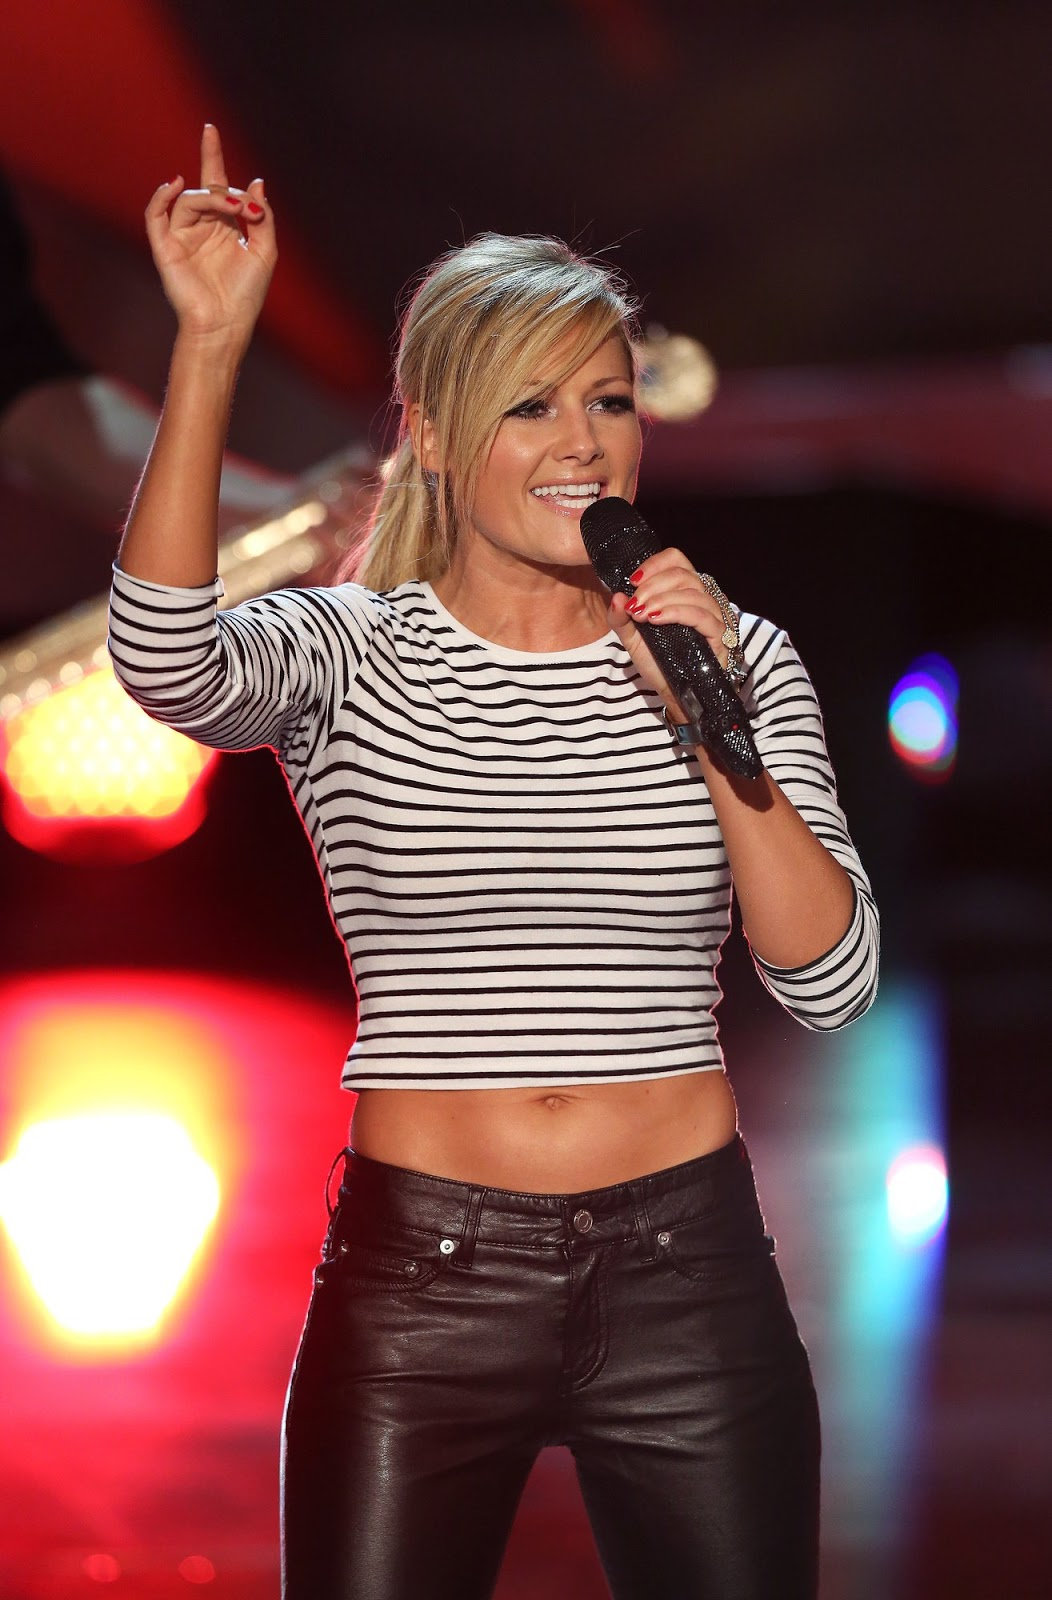 Chicago Schlager Music Review Helene Fischer Goes Back To Basic Schlager With Ist Doch Kein Wunder